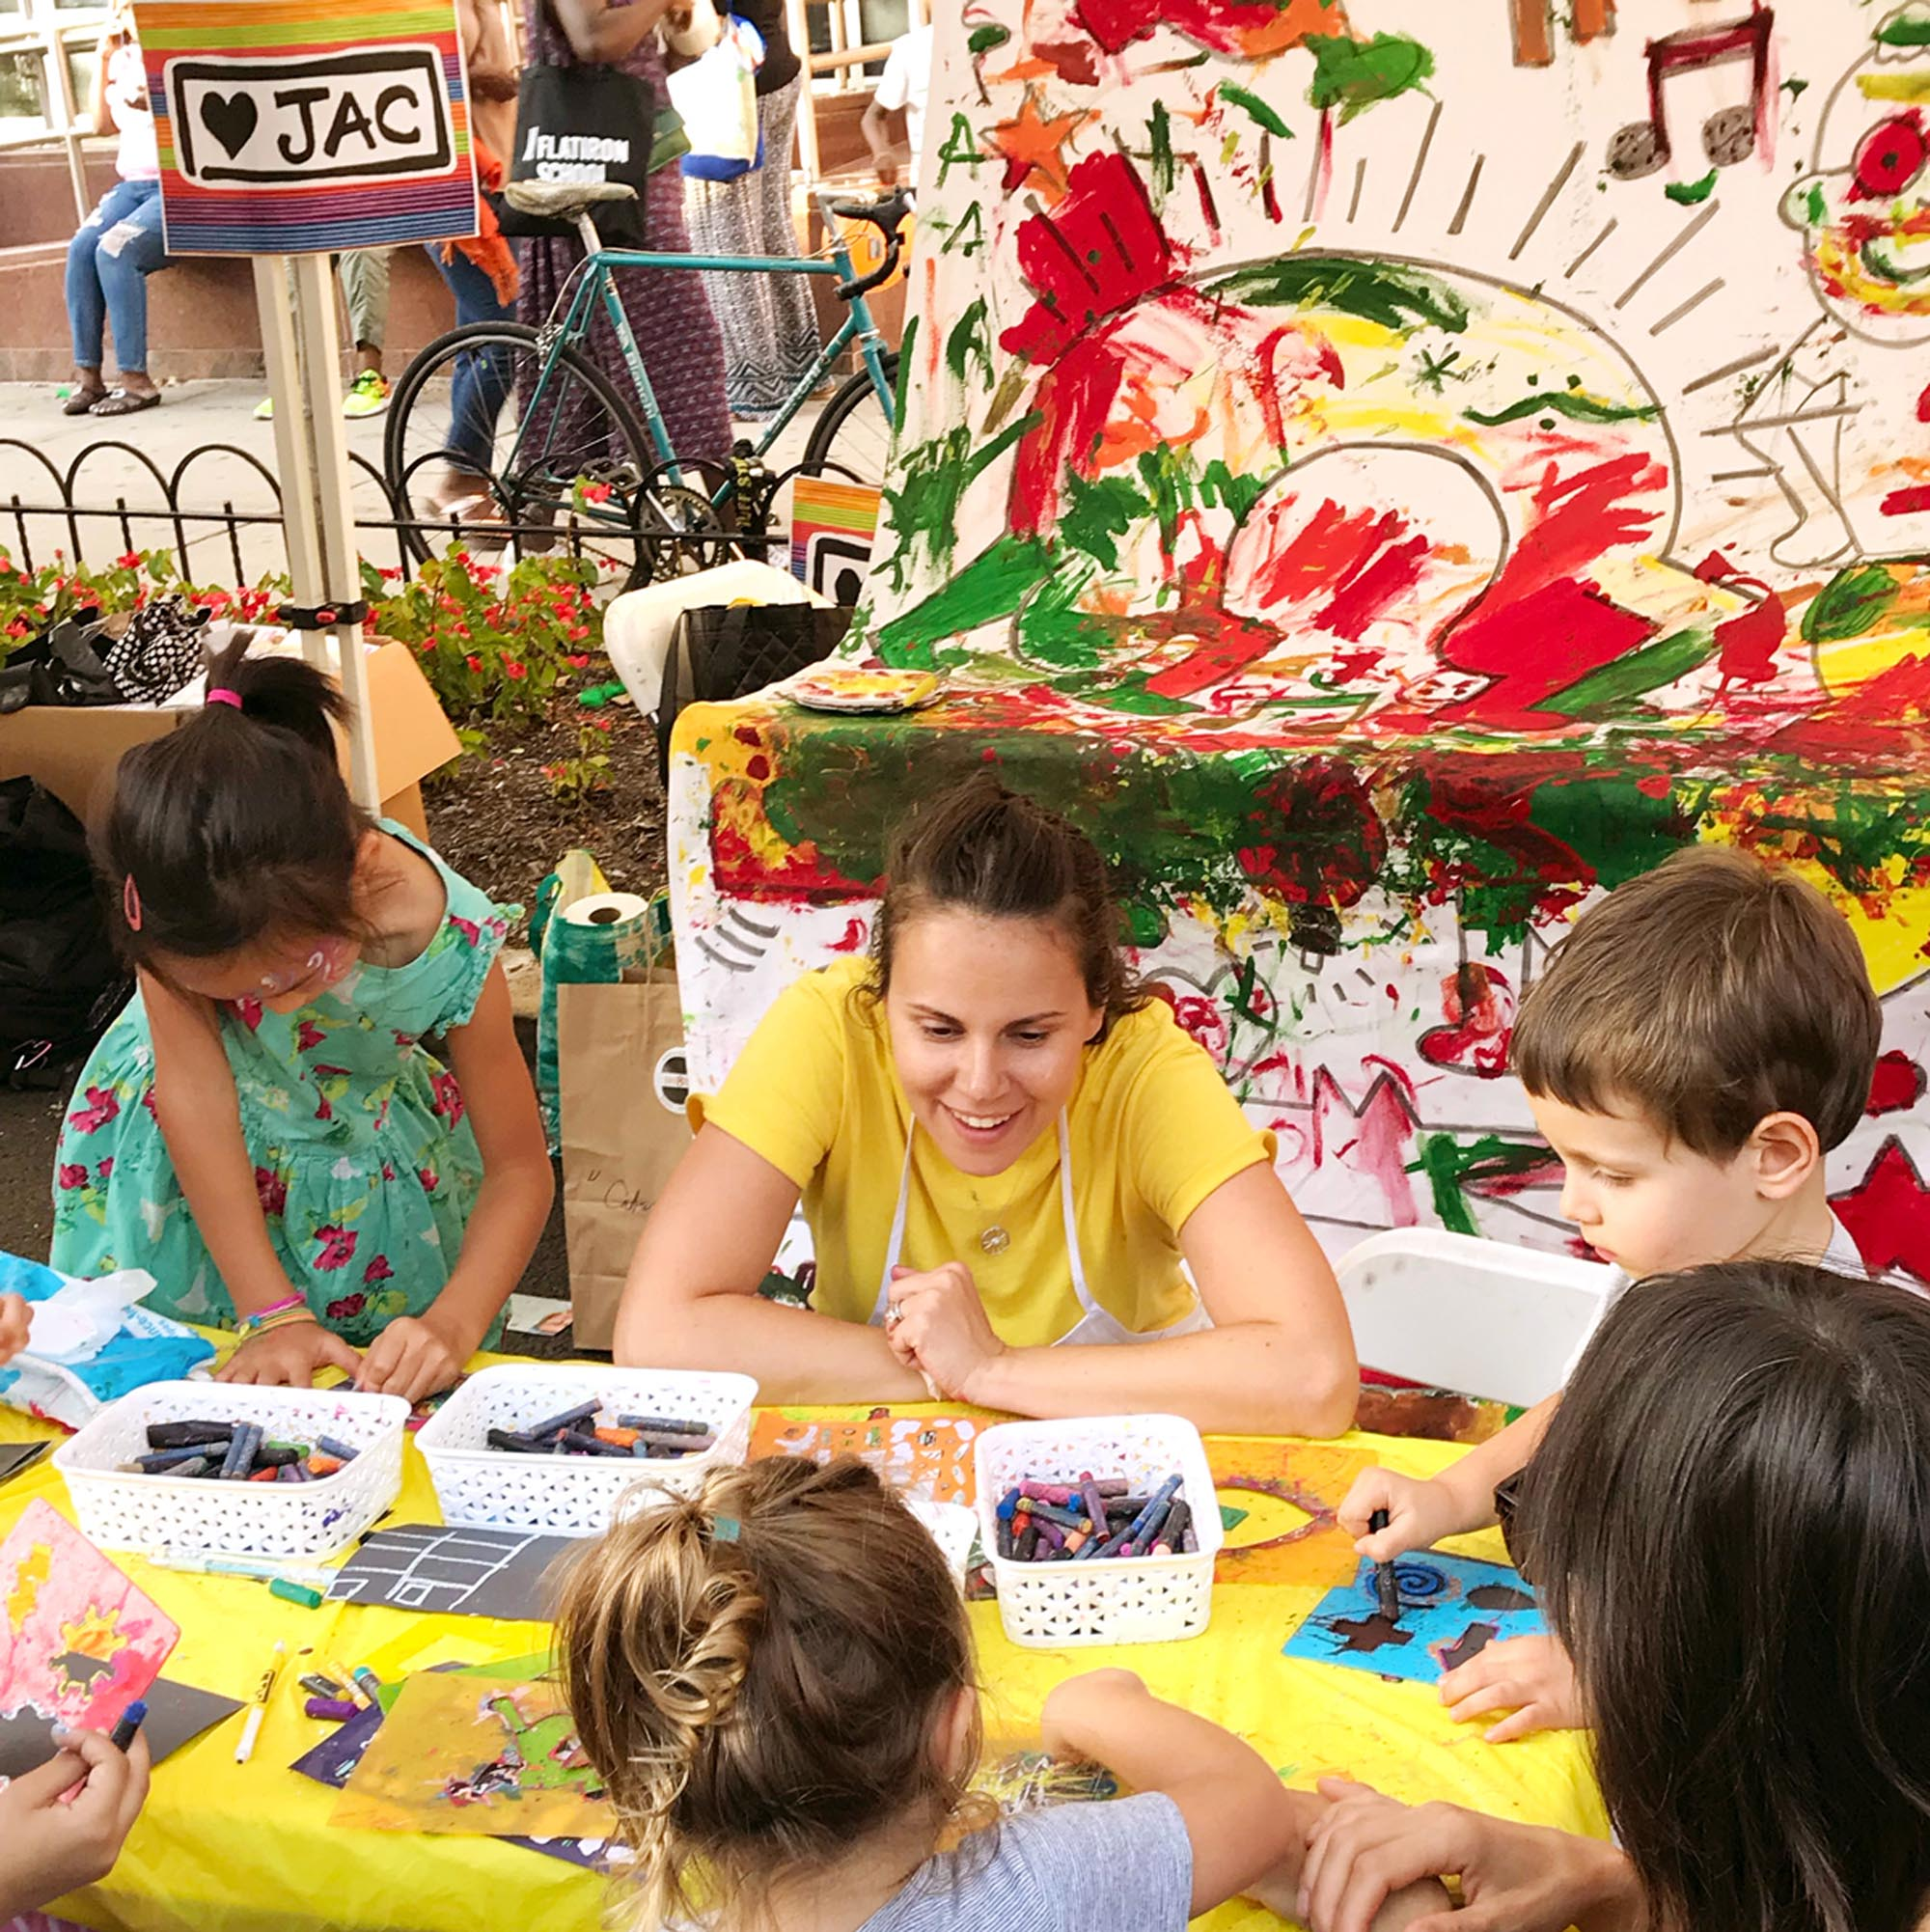 chlidren painting as a group